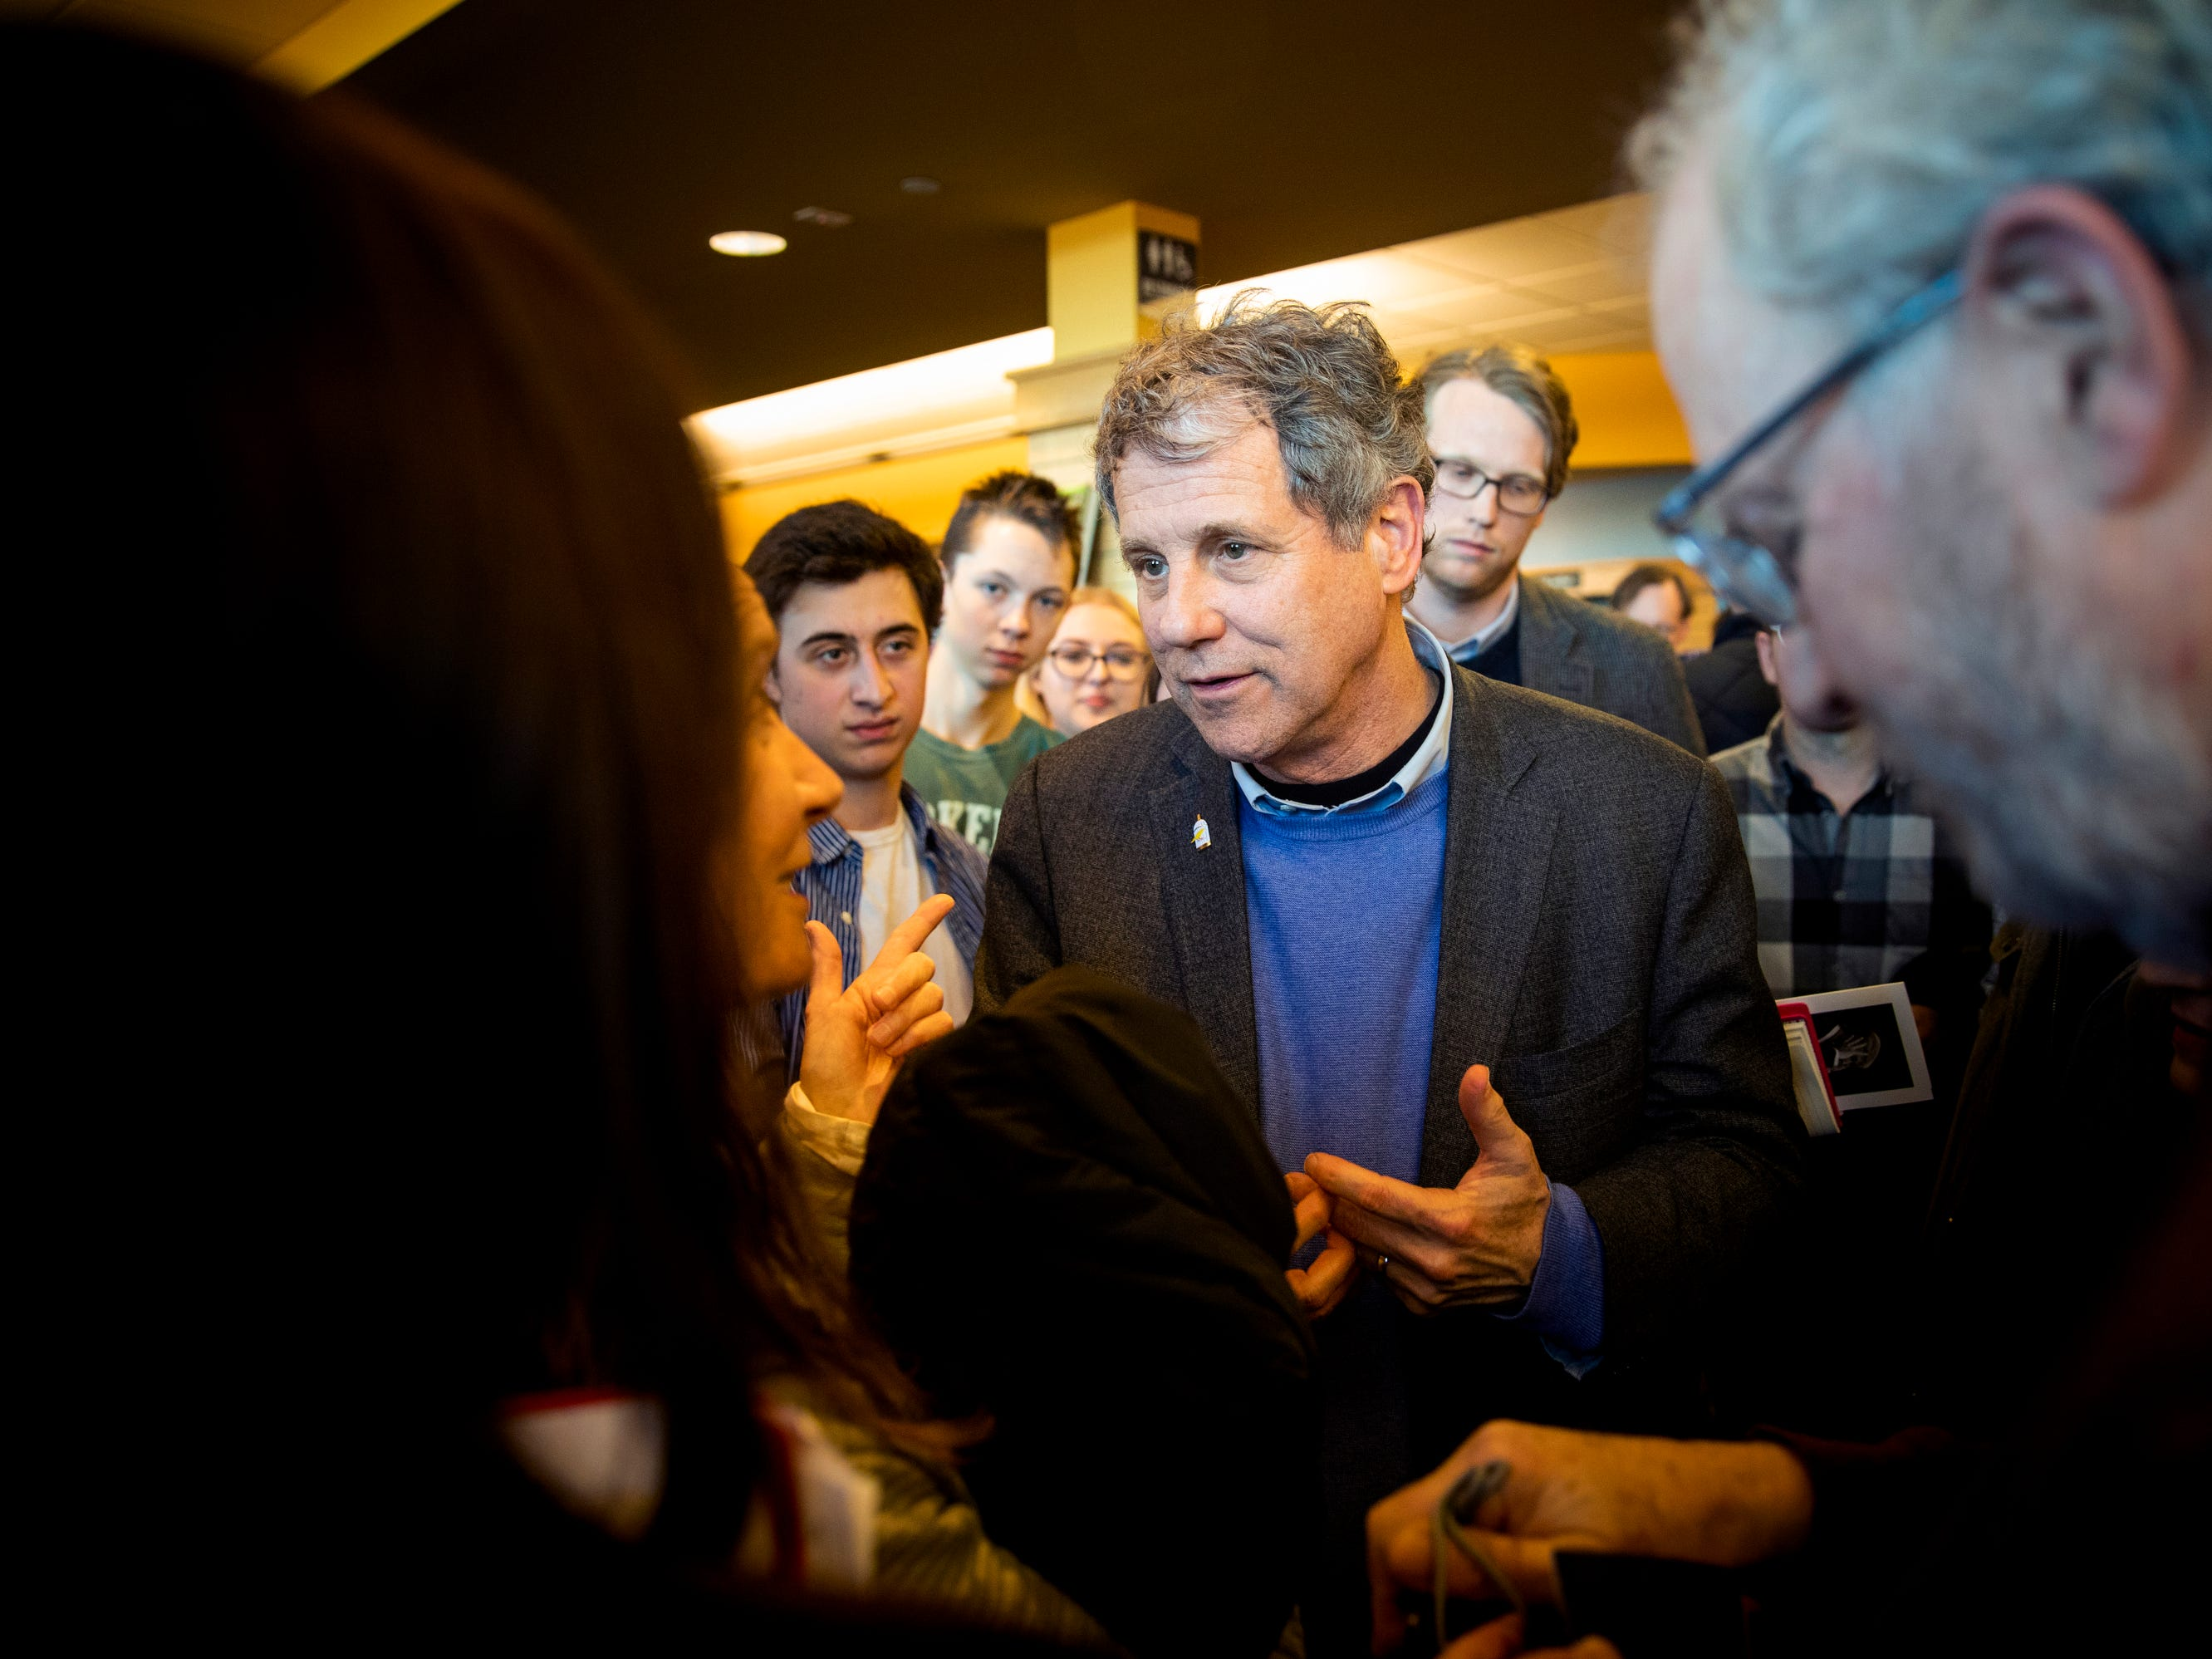 Senator Sherrod Brown meets people at Gibson's Bookstore in Concord, N.H. Saturday, February 9, 2019.